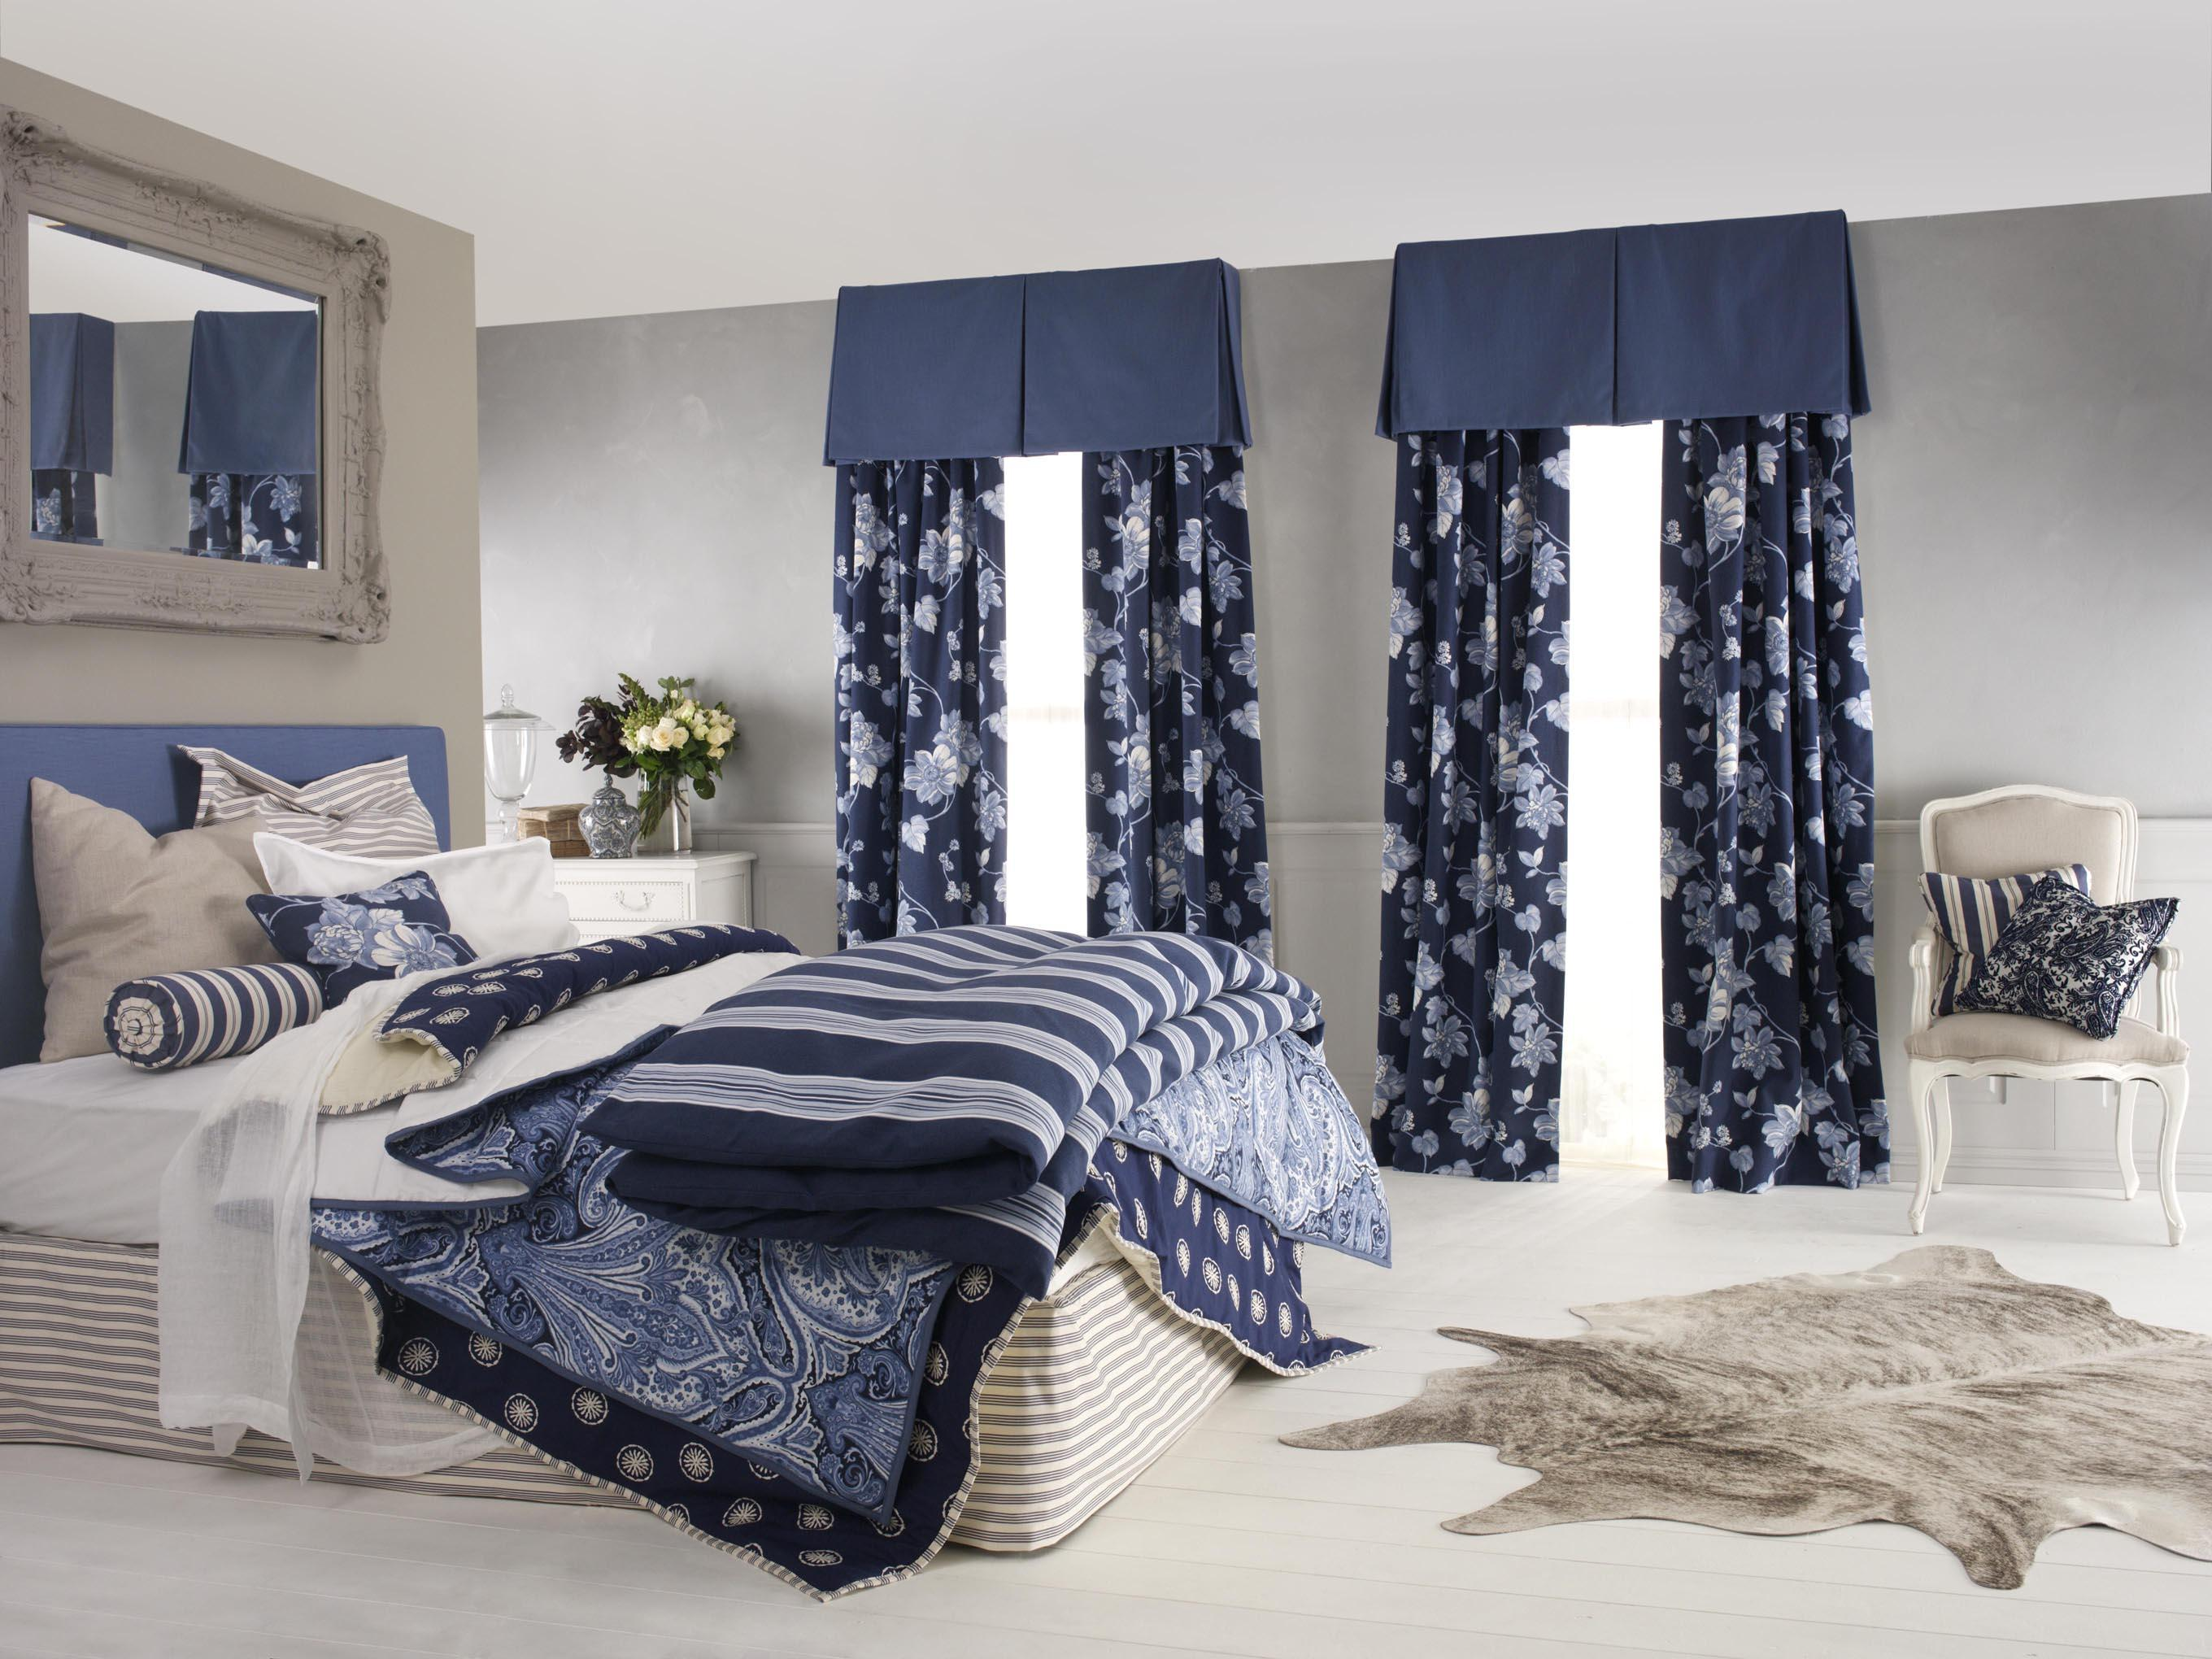 8-appealing-types-of-curtains-for-office-types-of-curtains-hanging-types-of-curtains-home-types-of-house-curtains-types-of-curtains-in-hotels-different-types-of-hanging-curtains-different-types How to accentuate your home differently?